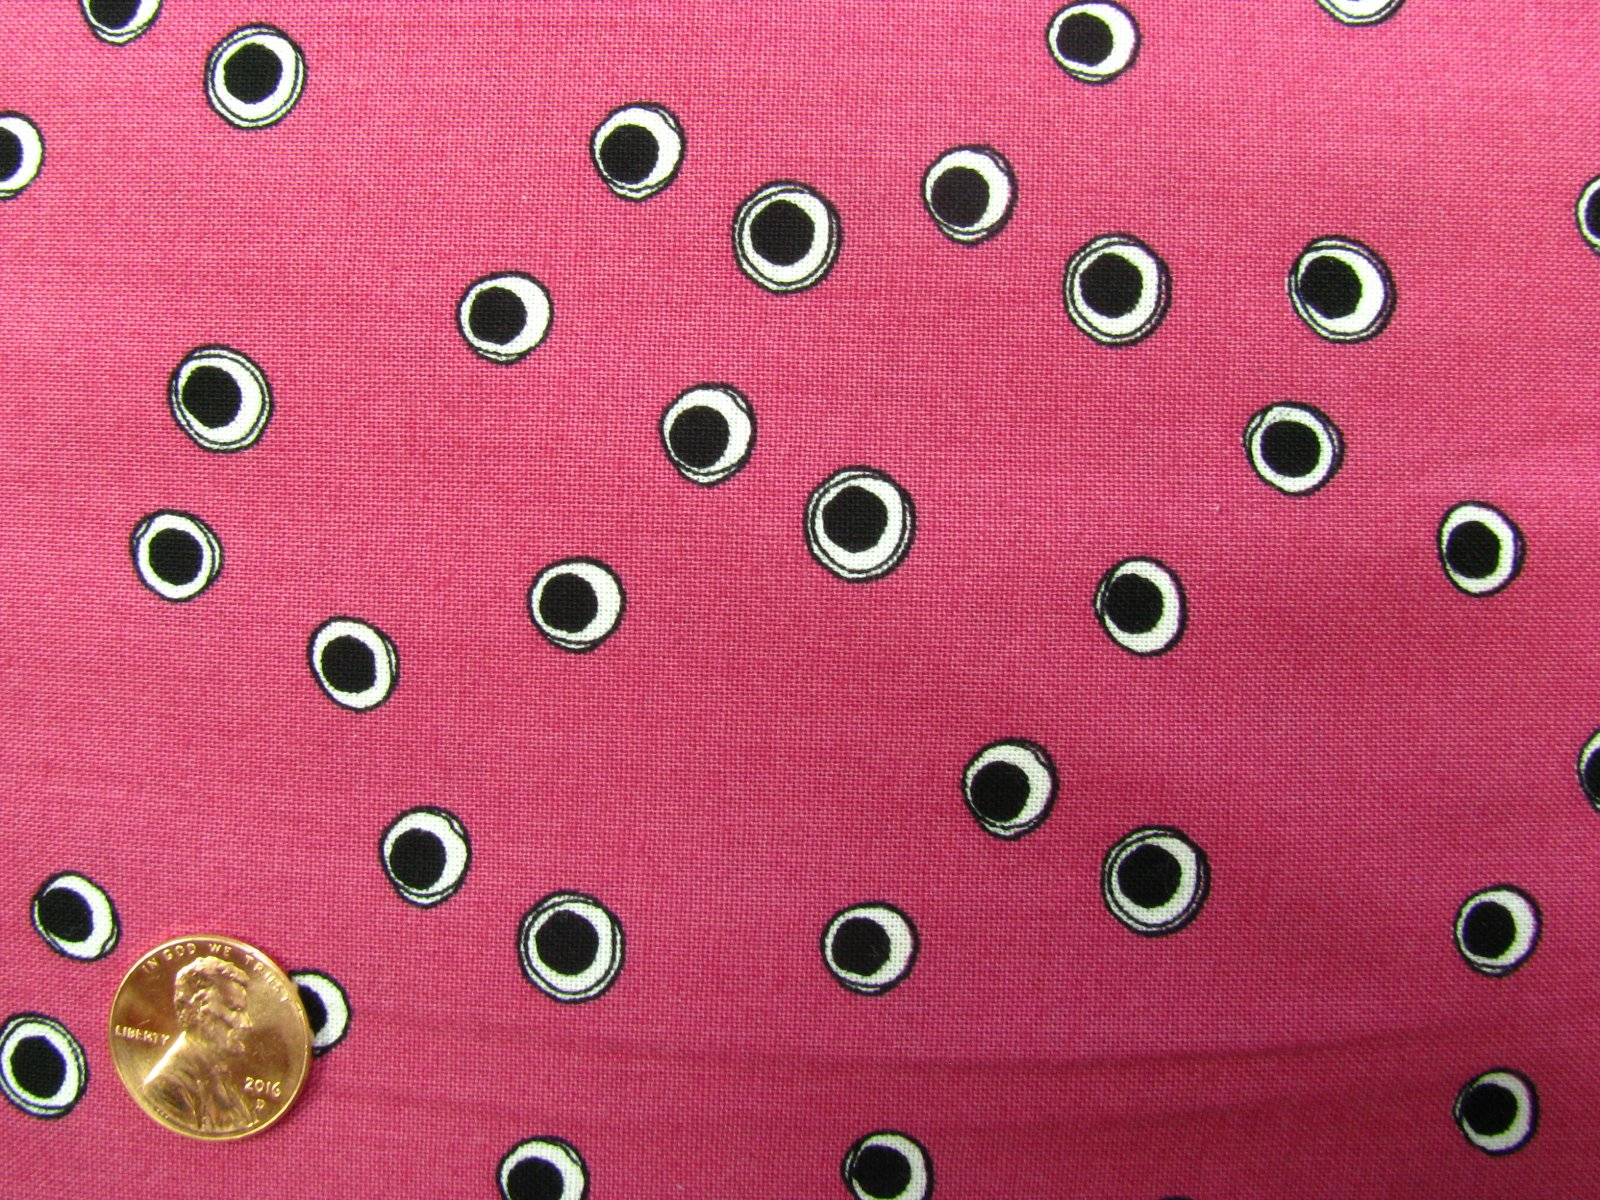 Quilting Treasures-Still Loralie-21235-V pink with black dots